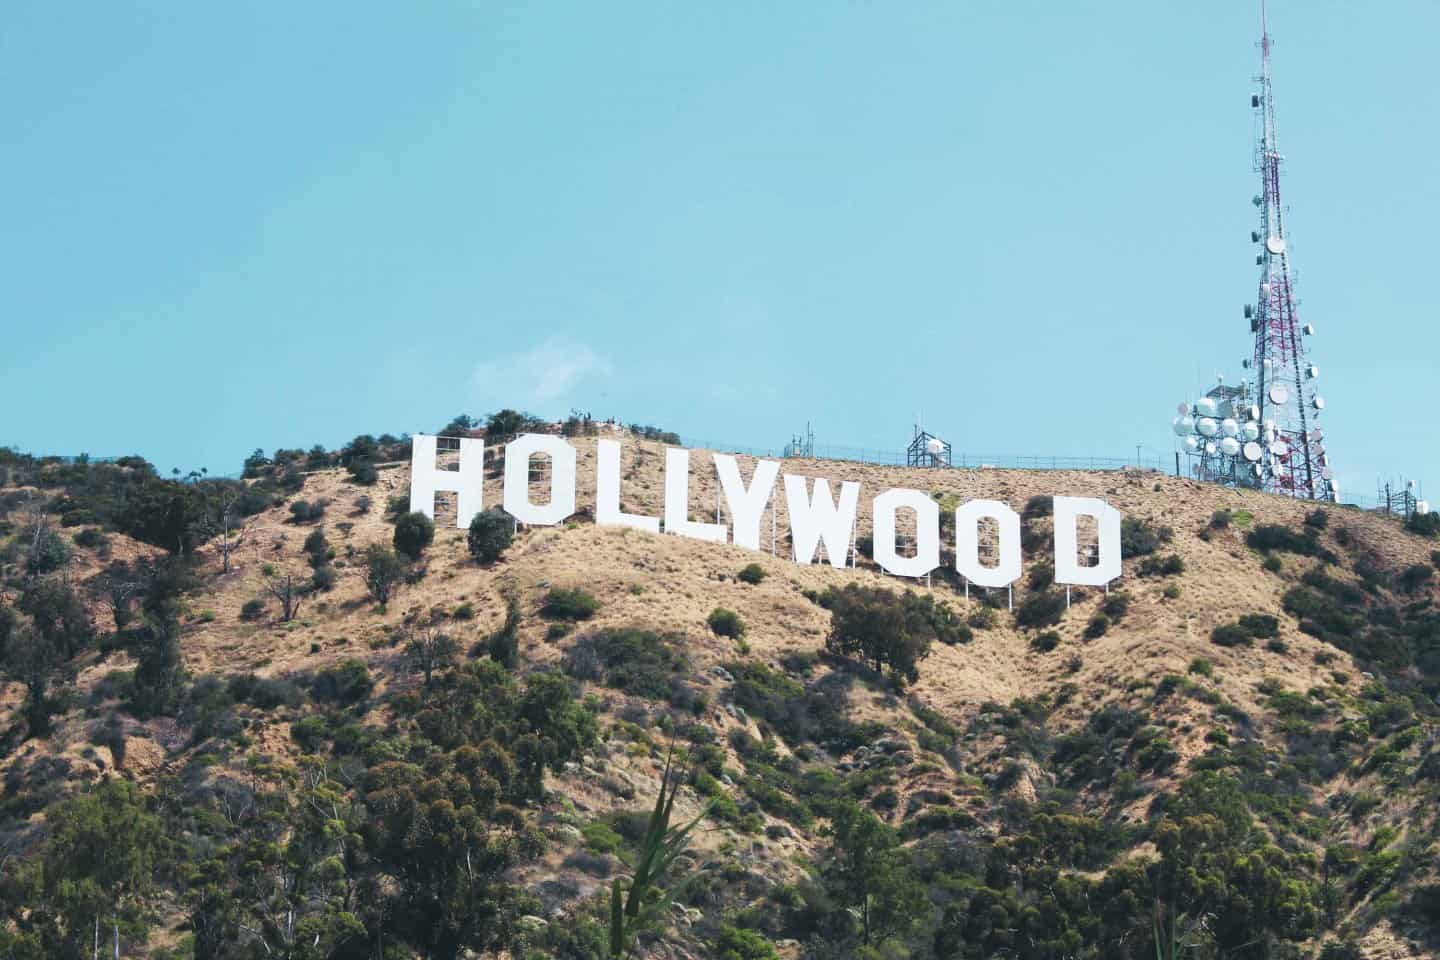 The Hollywood Sign in Los Angeles as seen from the hiking trail